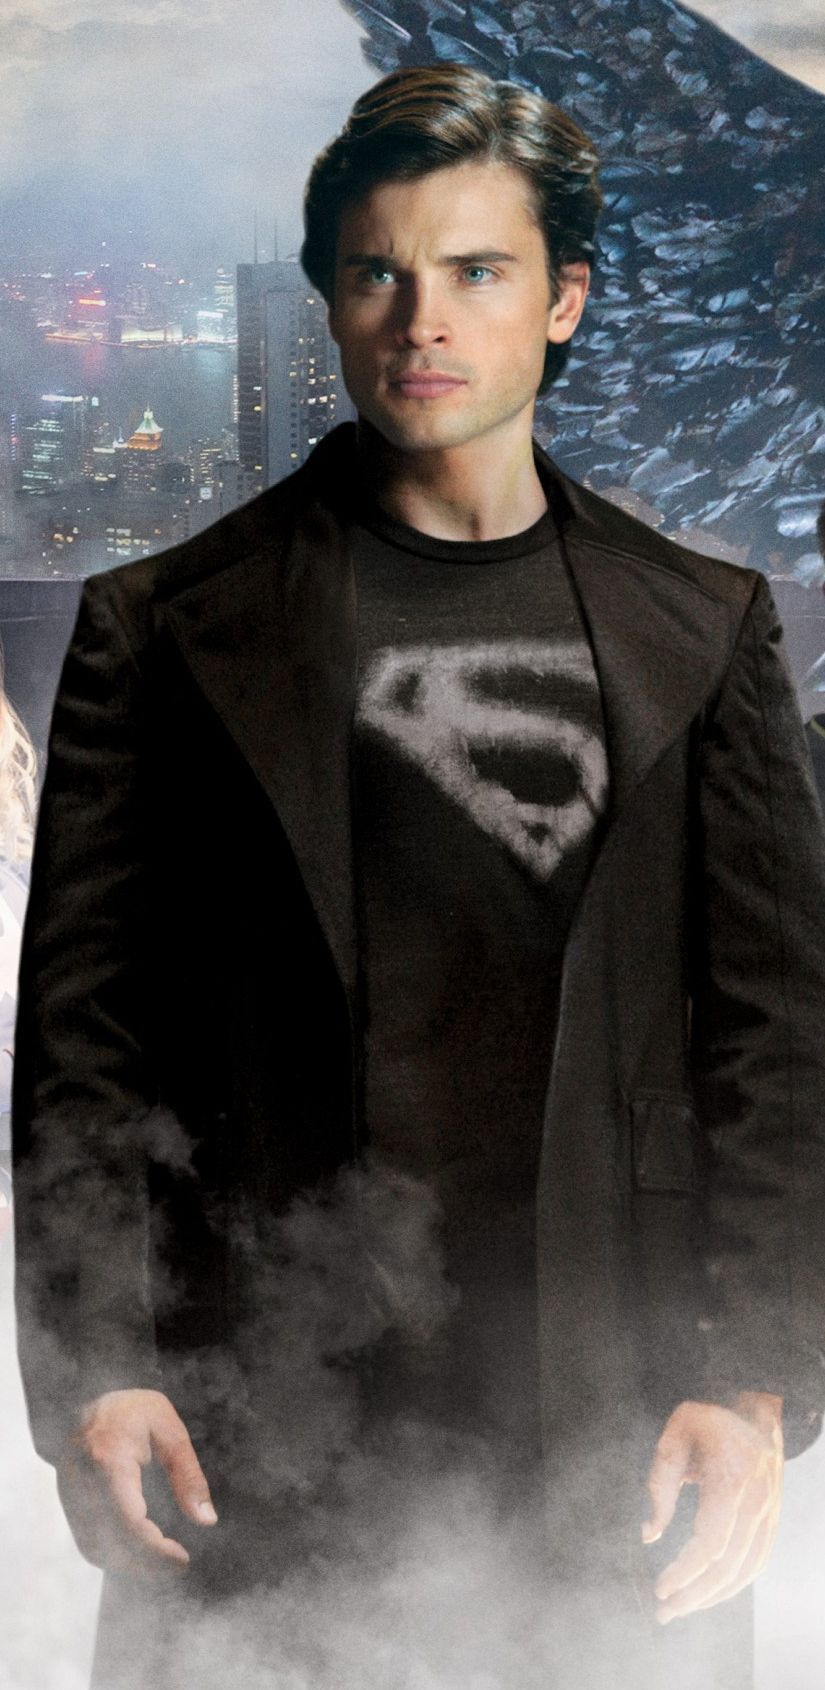 Clark Kent Smallville Clark Kent Smallville Tom Welling Smallville